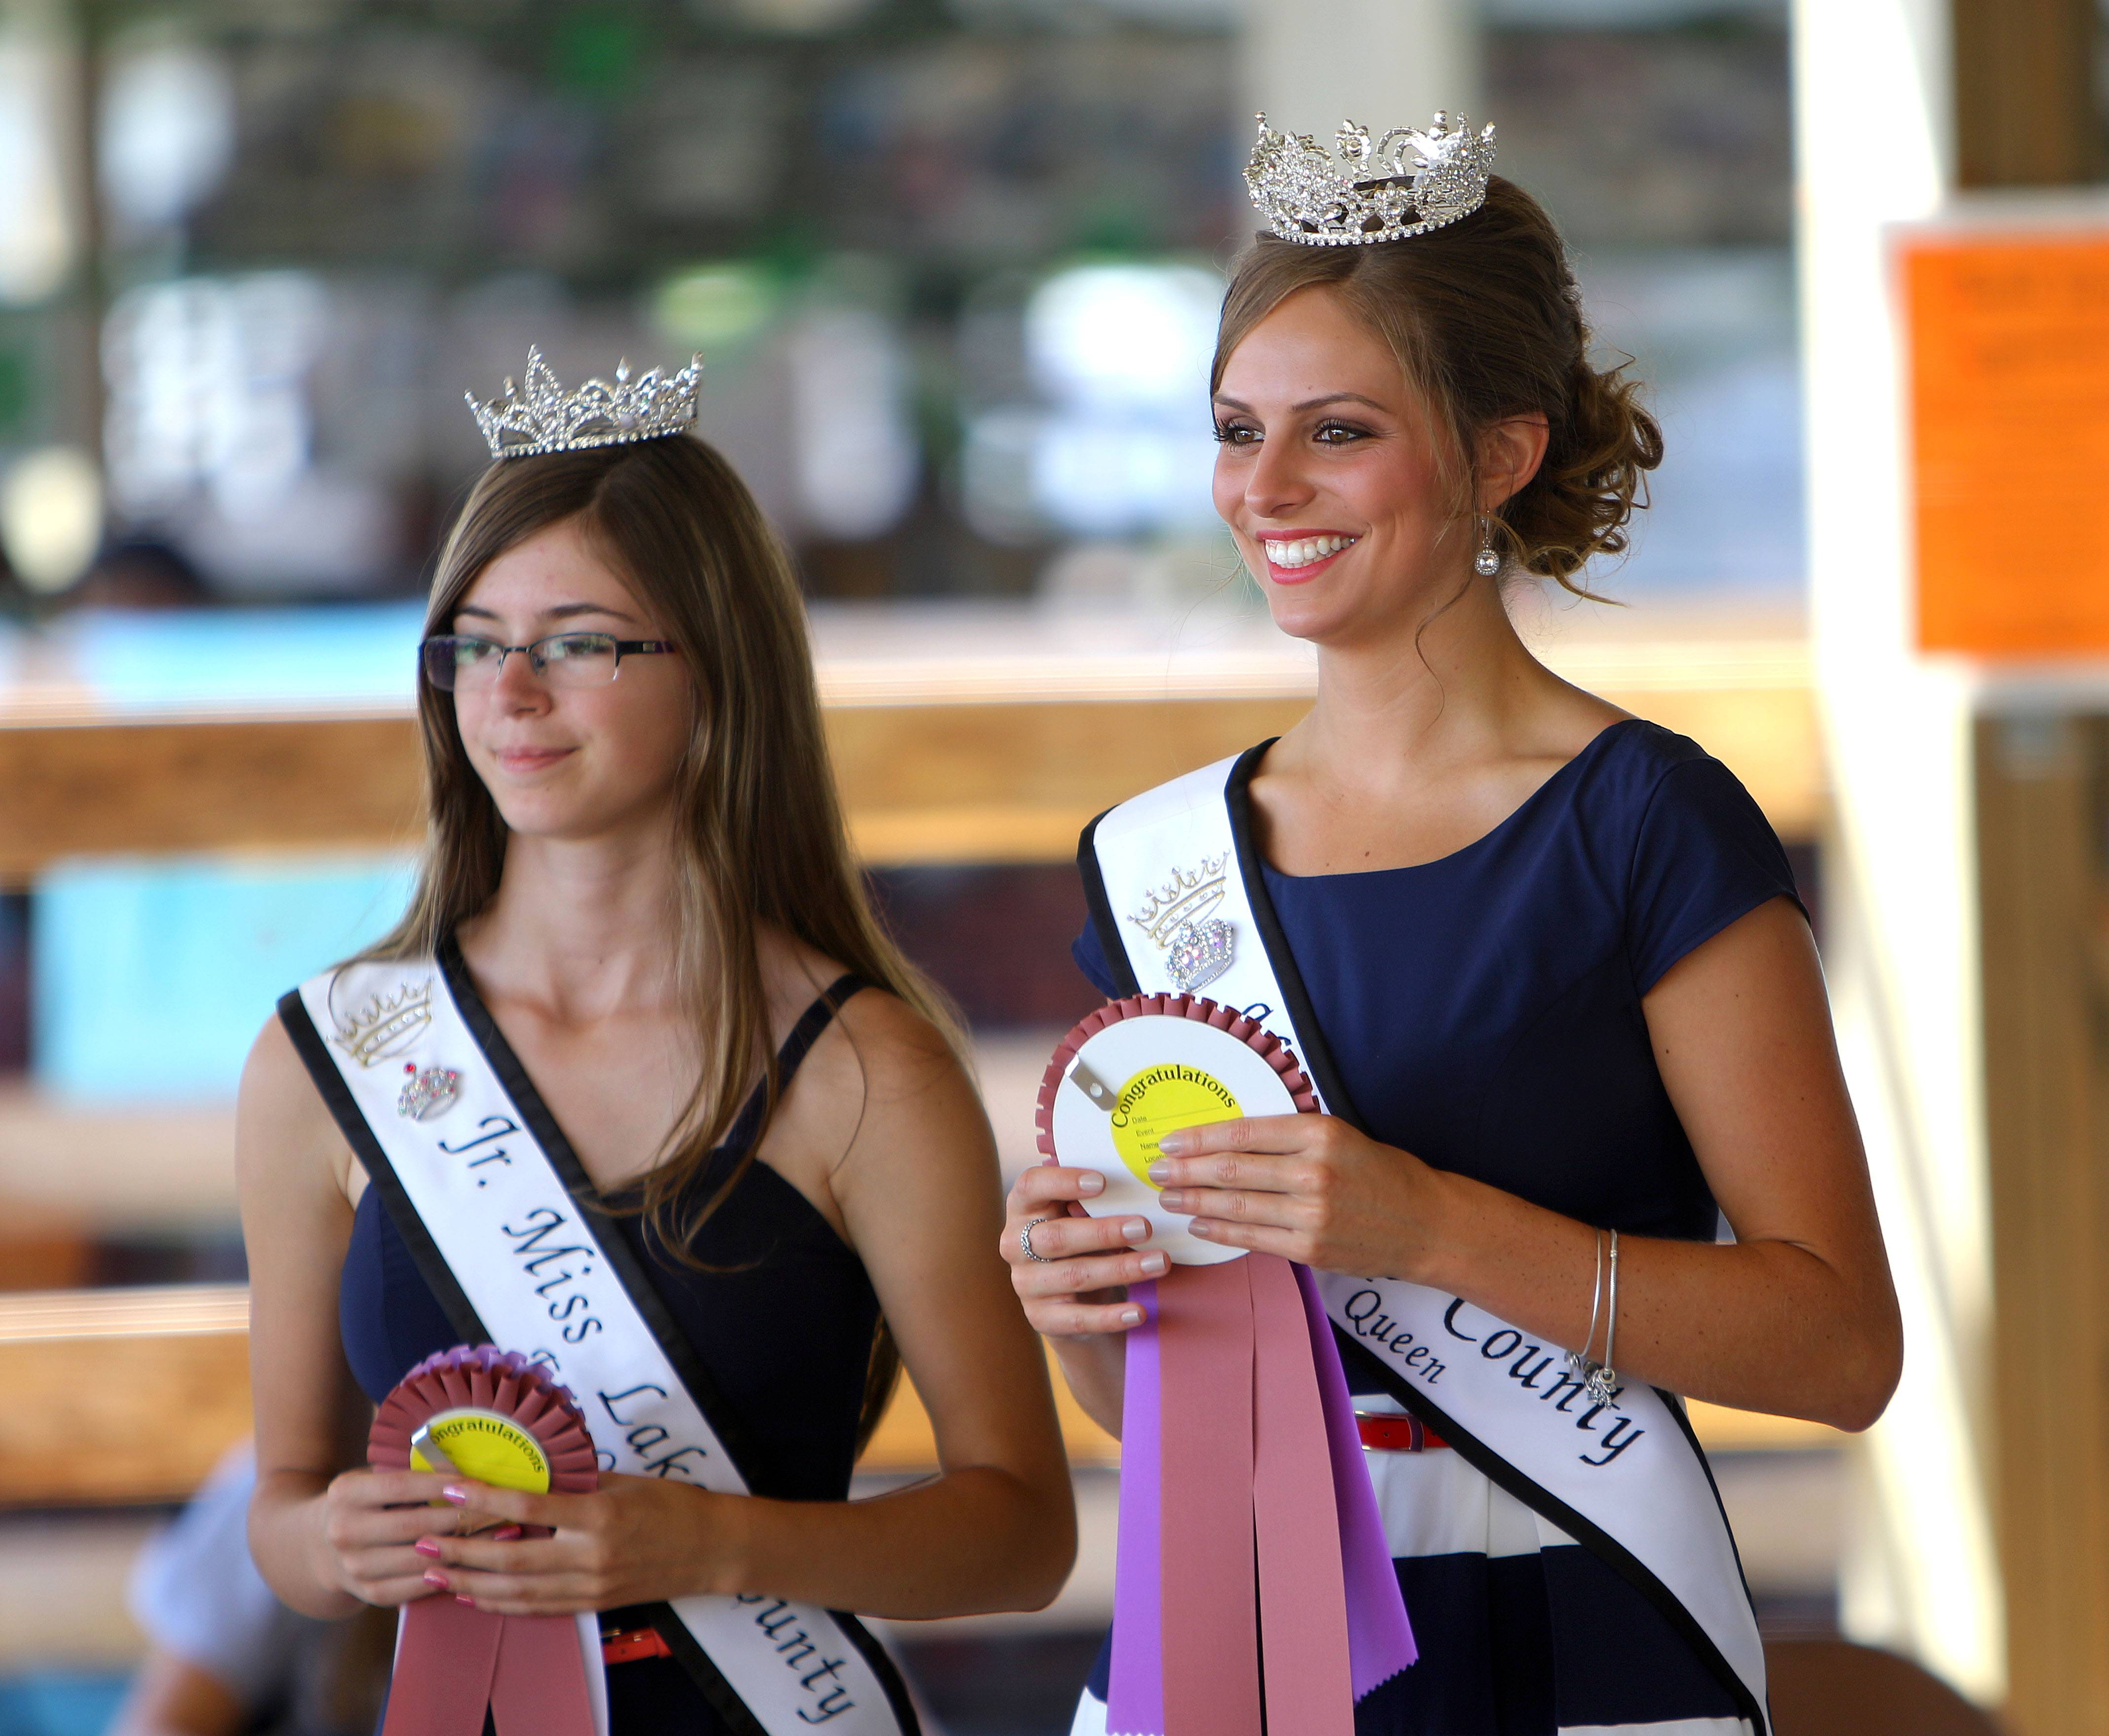 Miss Lake County Fair 2015 Bethani Jacobsen, 20 of Wauconda, cheers at the Banana Race during day 2 of the Lake County Fair in Grayslake Thursday.